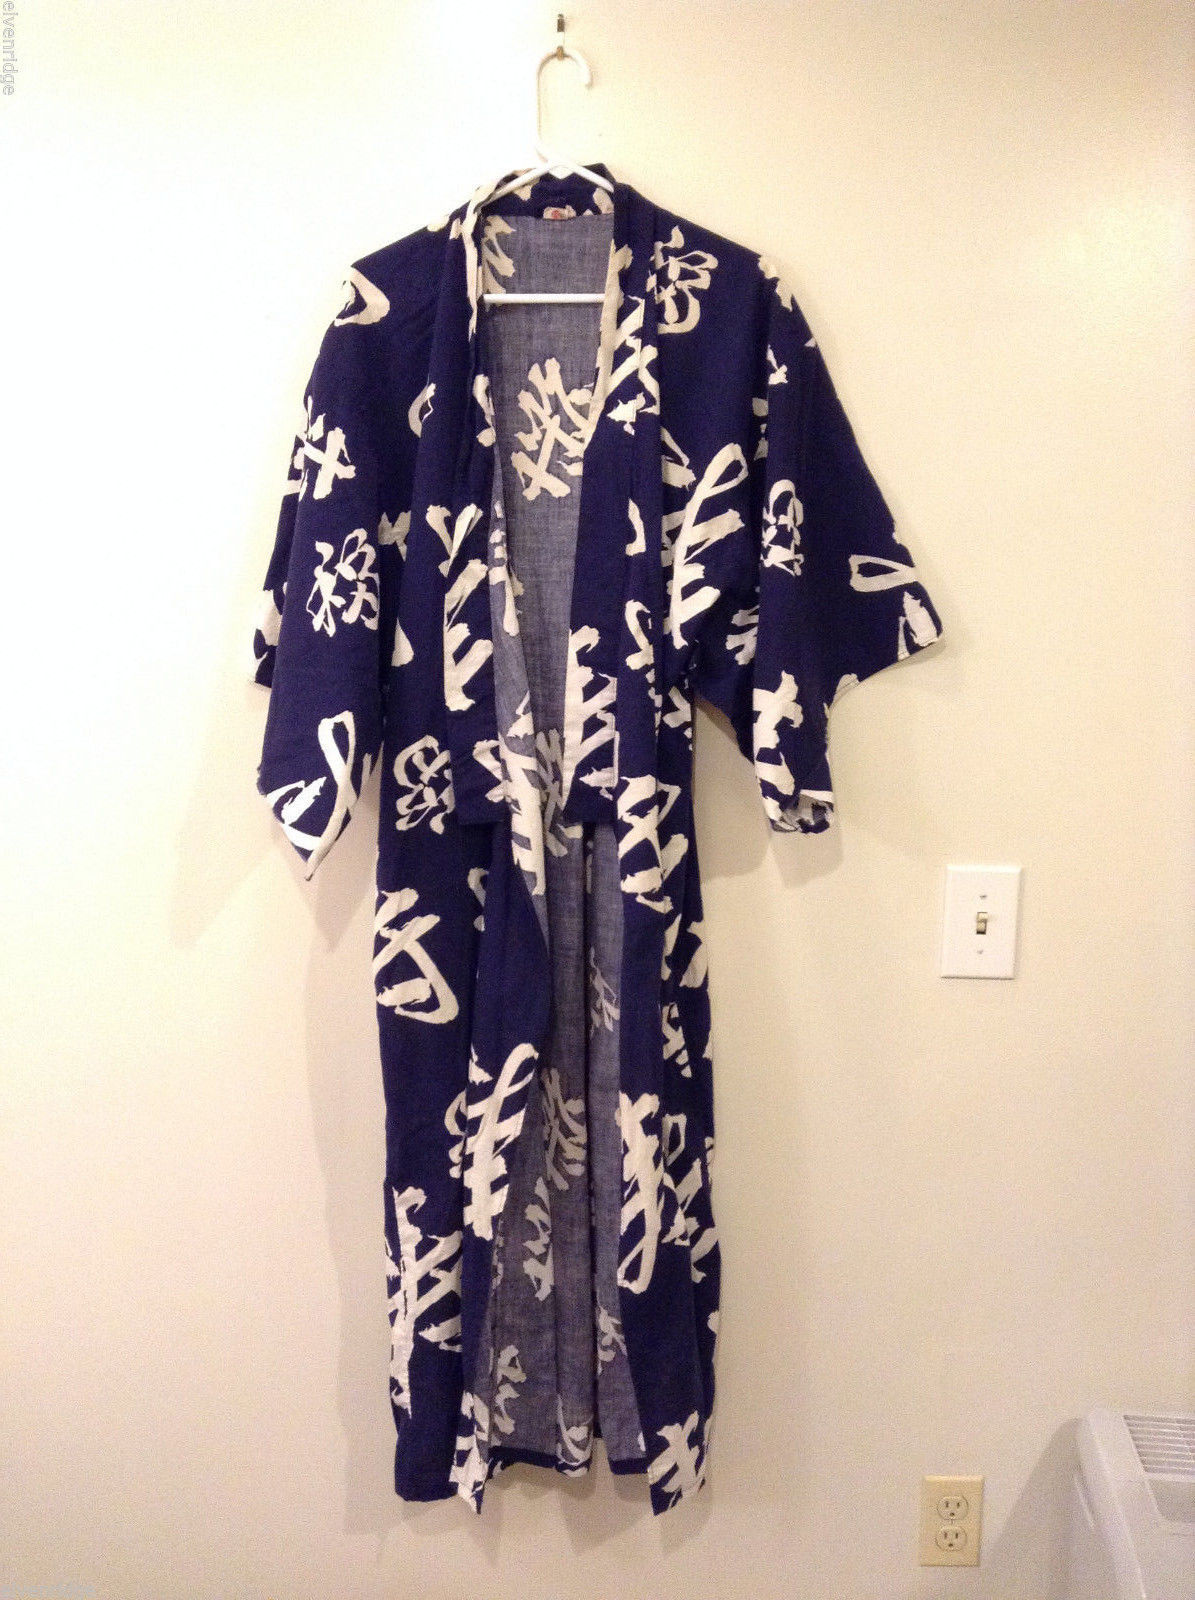 Authentic Japanese Cotton Robe Kimono Yukata Navy Blue & White Calligraphy Print